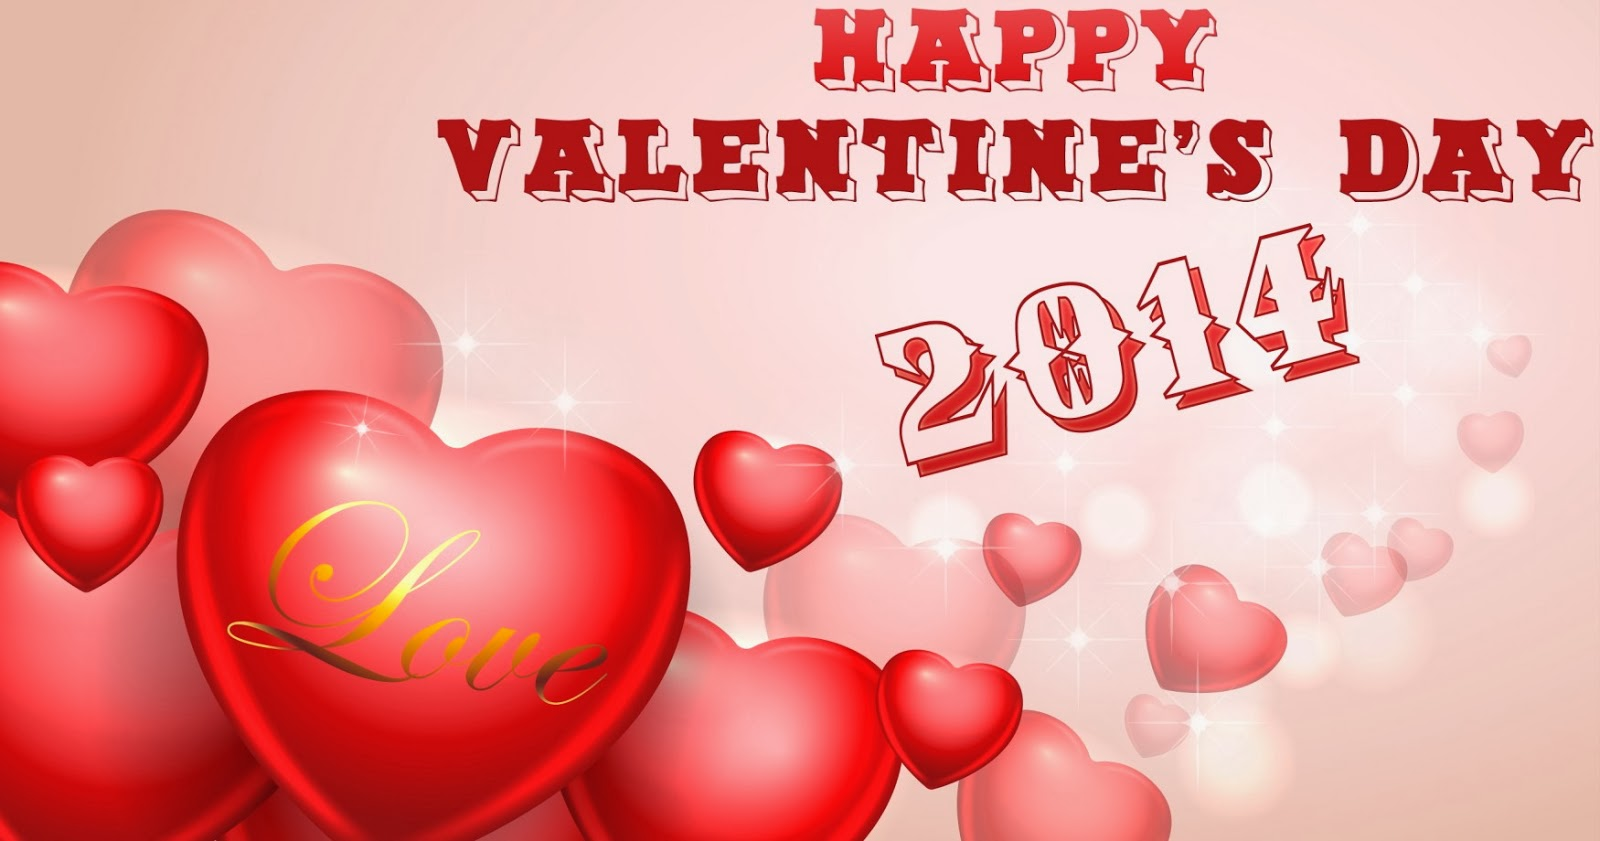 Valentines Day: Valentine's Day Hot Images